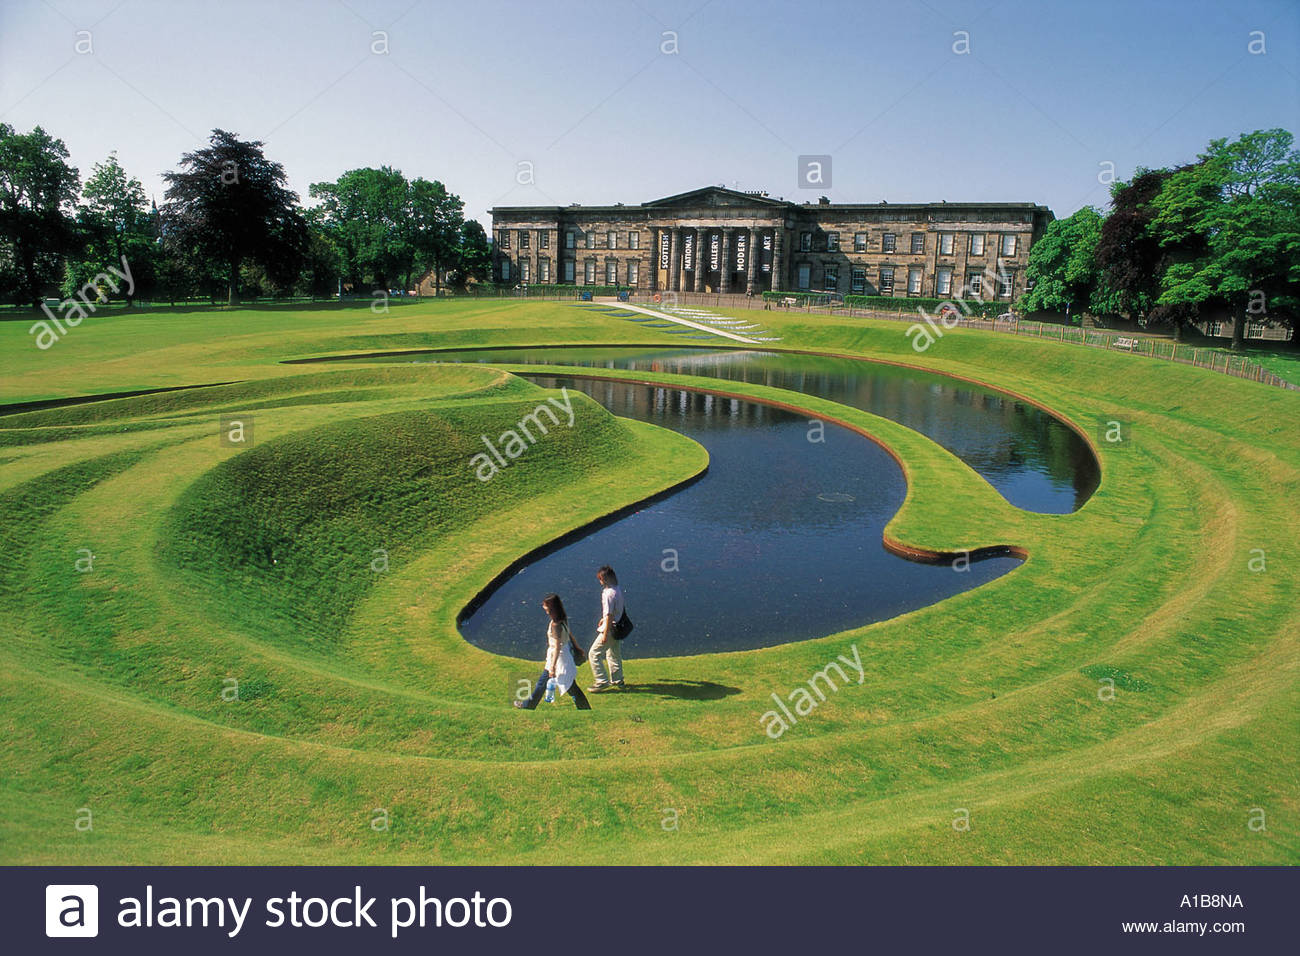 SUCHEN AUF BESUCHER ZU FUß RUND UM DIE LANDFORM INSTALLATION UEDA IN DER SCOTTISH NATIONAL GALLERY OF MODERN ART EDINBURGH Stockbild